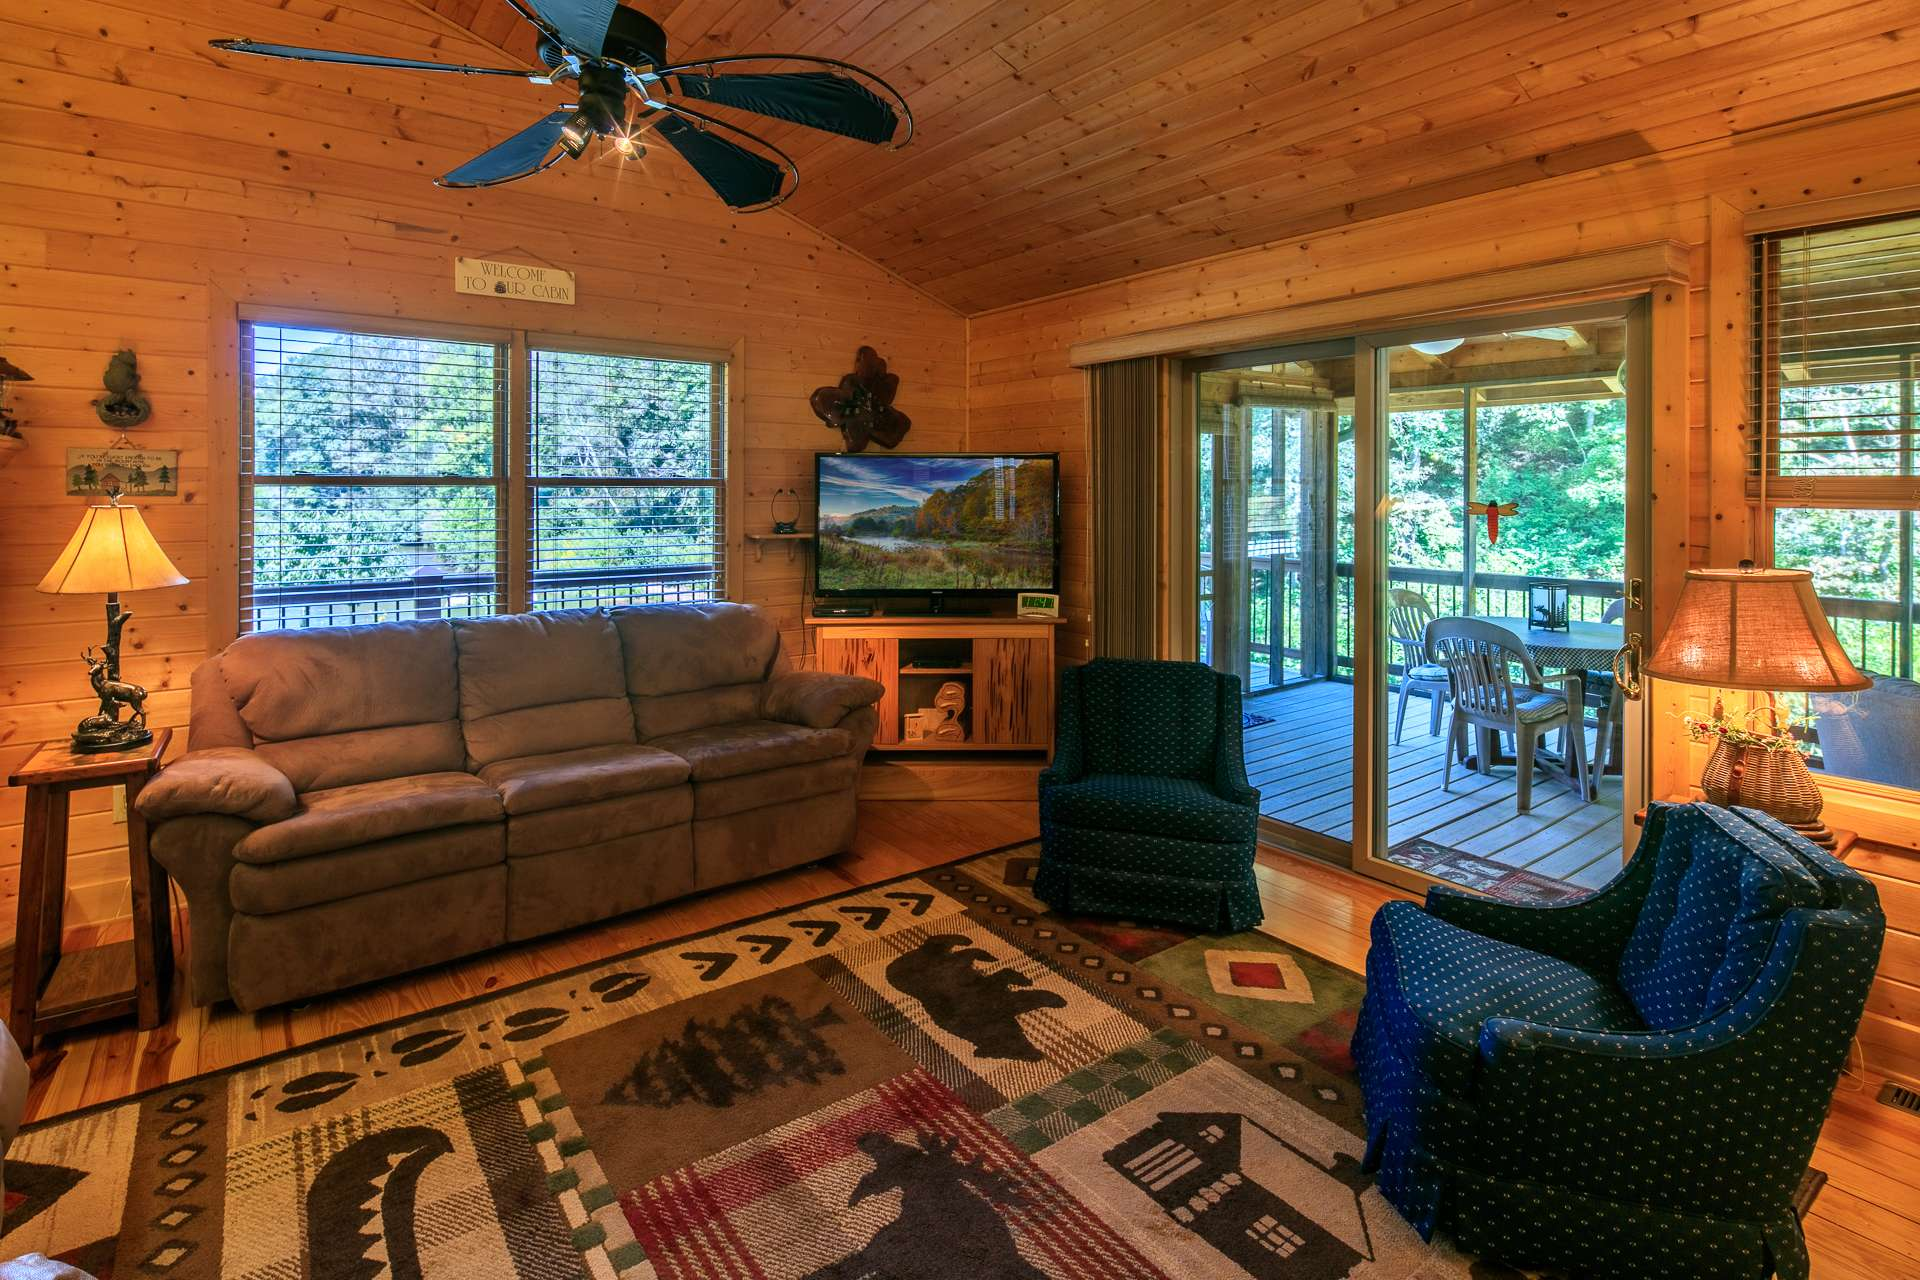 The cabin offers main level living with lots of windows for natural light and to bring the outdoors inside through all four seasons in the North Carolina high country.